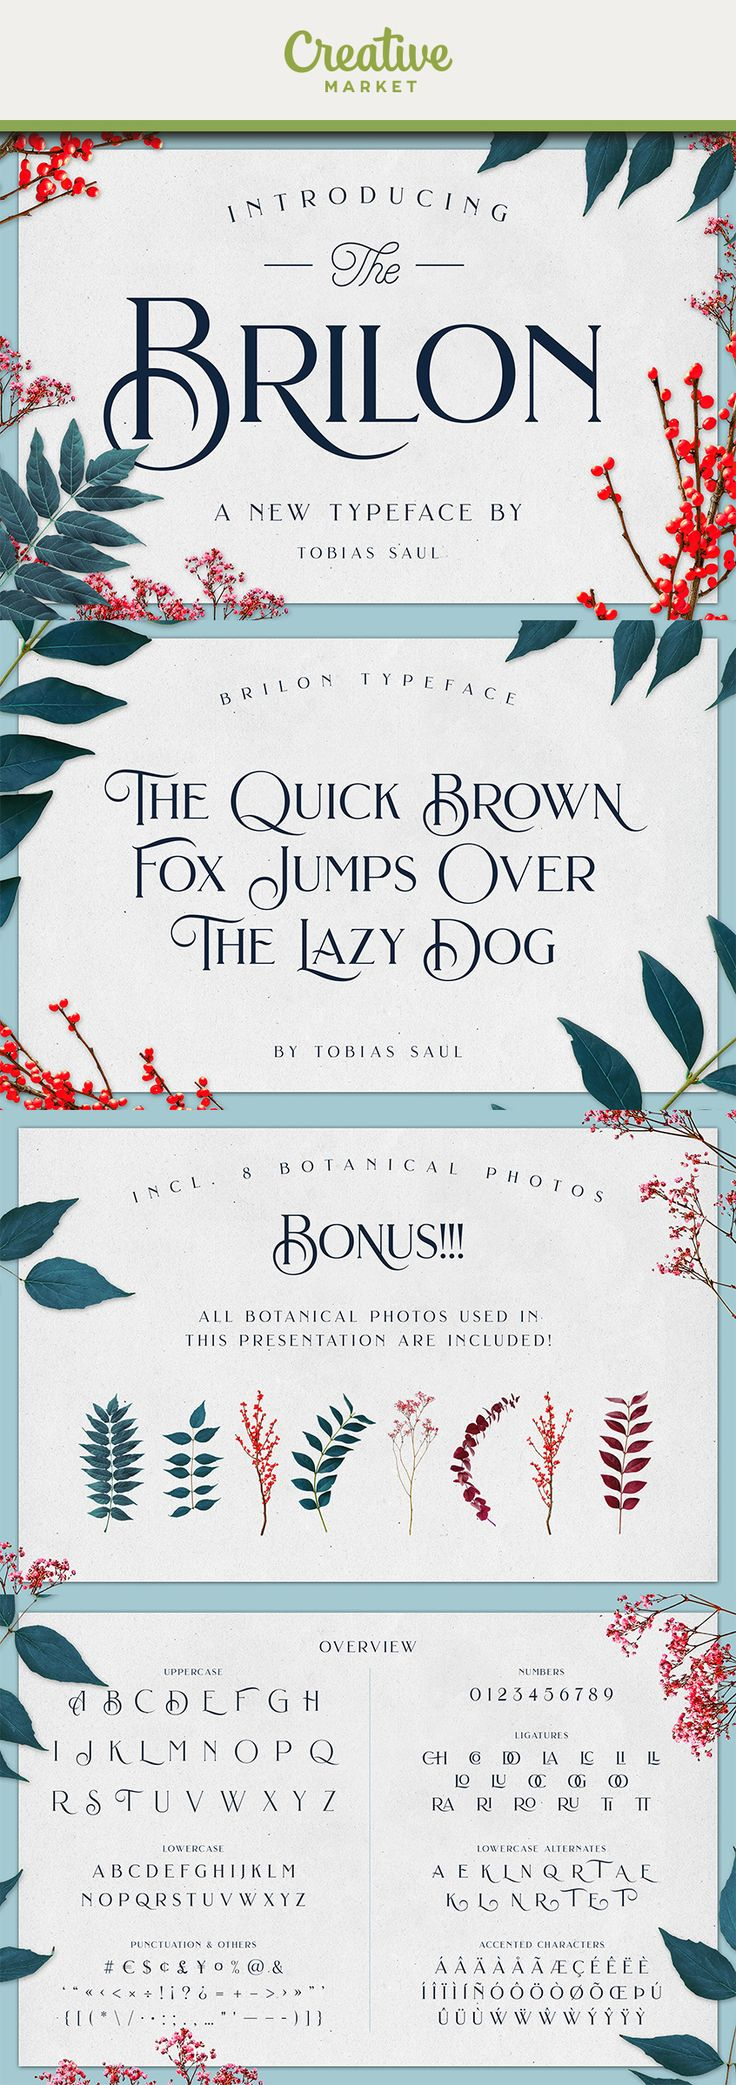 #affiliate Brilon is an elegant serif font inspired by the Art Deco era. It perfectly represents vintage esthetics in a modern and minimalist way. The font includes special uppercase letters, alternate characters and beautiful ligatures. Furthermore it comes with 8 botanical photos which I used in this product presentation! The font is perfect for elegant logo design, packaging or invitation cards.